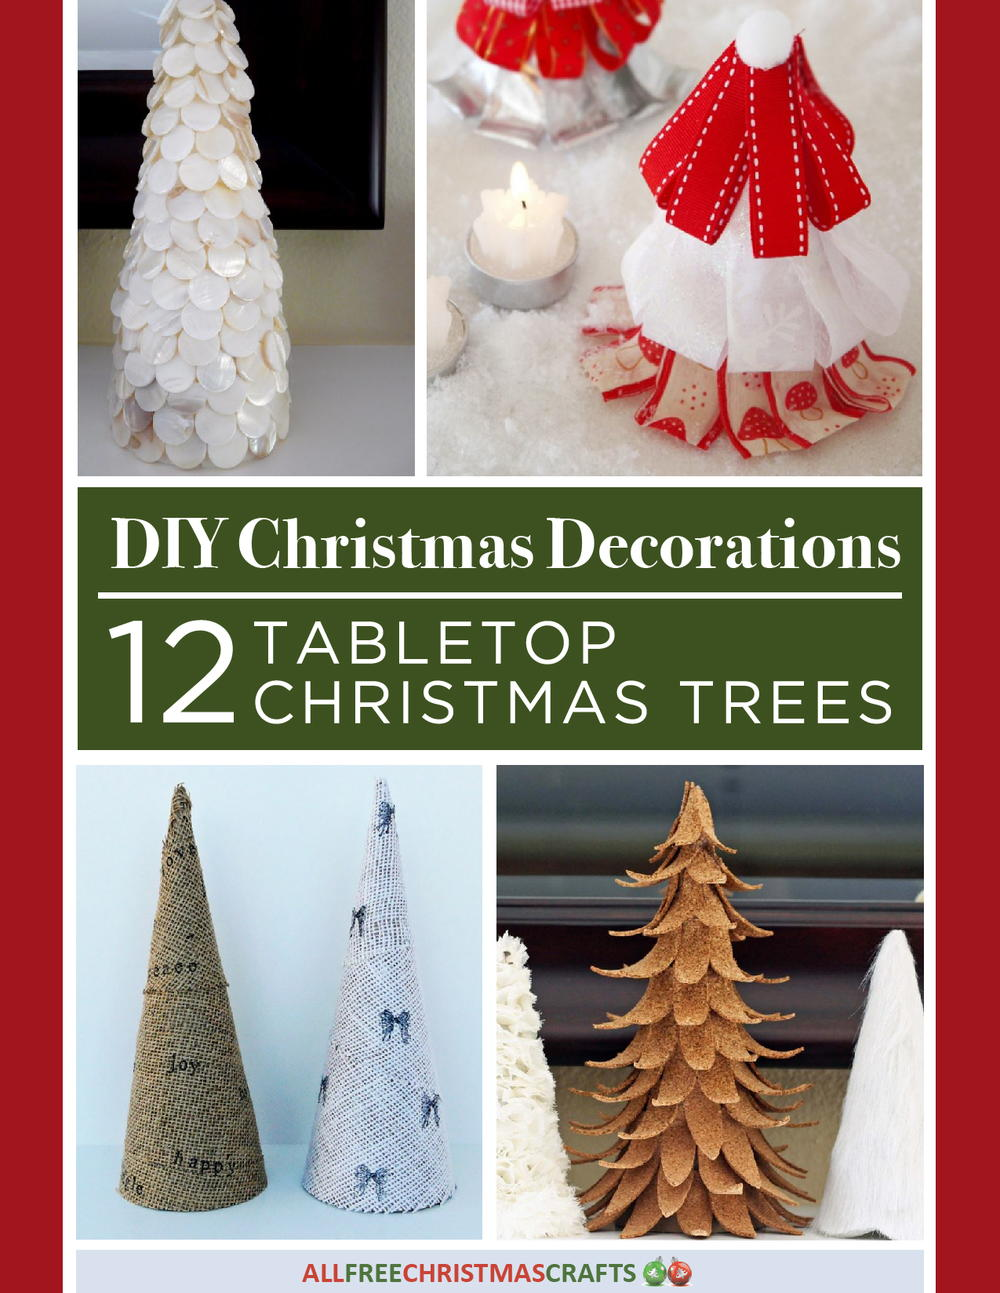 diy christmas decorations 12 tabletop christmas trees free ebook allfreechristmascraftscom - Free Christmas Decorations